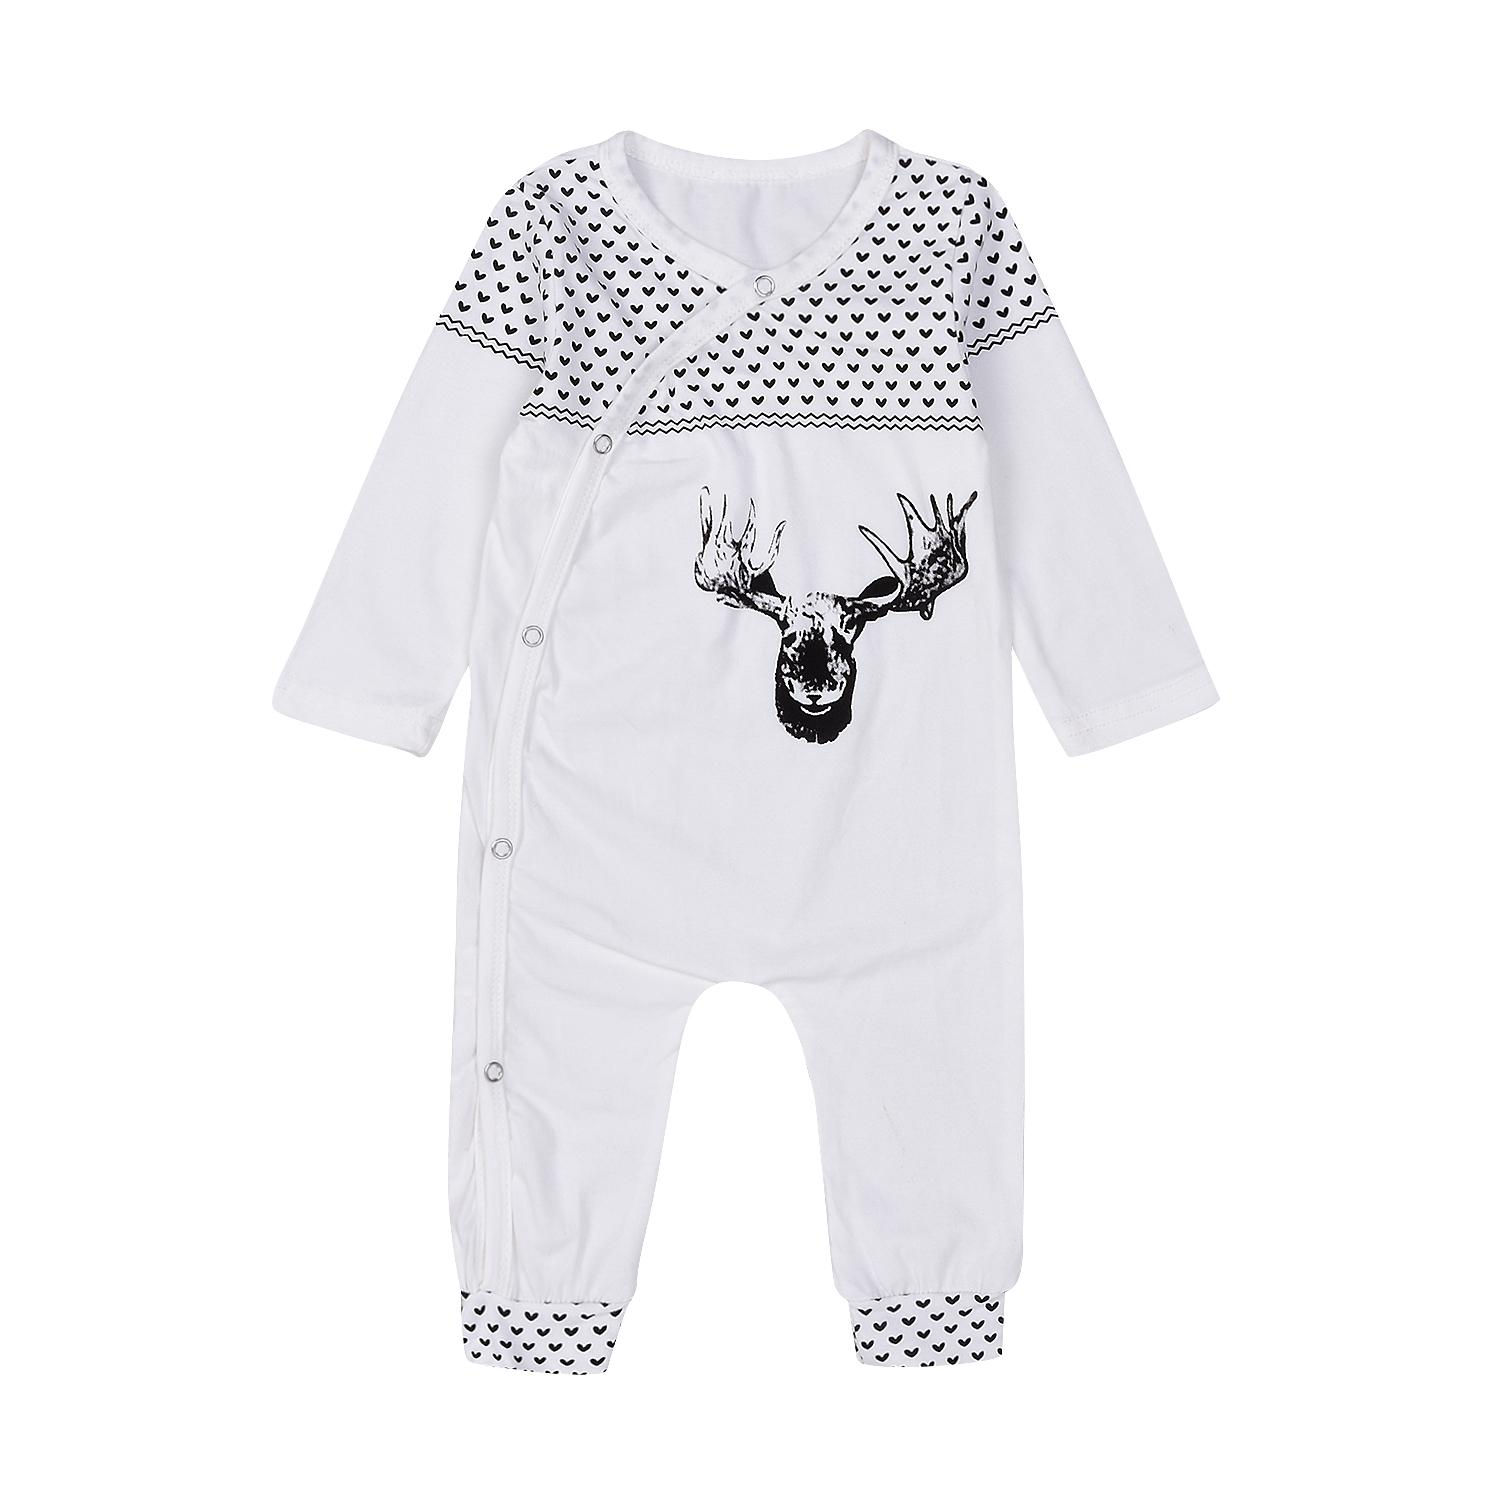 800ec7993 2019 Mikrdoo High Quality Christmas Clothes Baby Suits Kids Boys Girls Deer  Print Infant Sleepwear Cotton Warm Romper Jumpsuit Xmas Outfits 0 18M From  ...